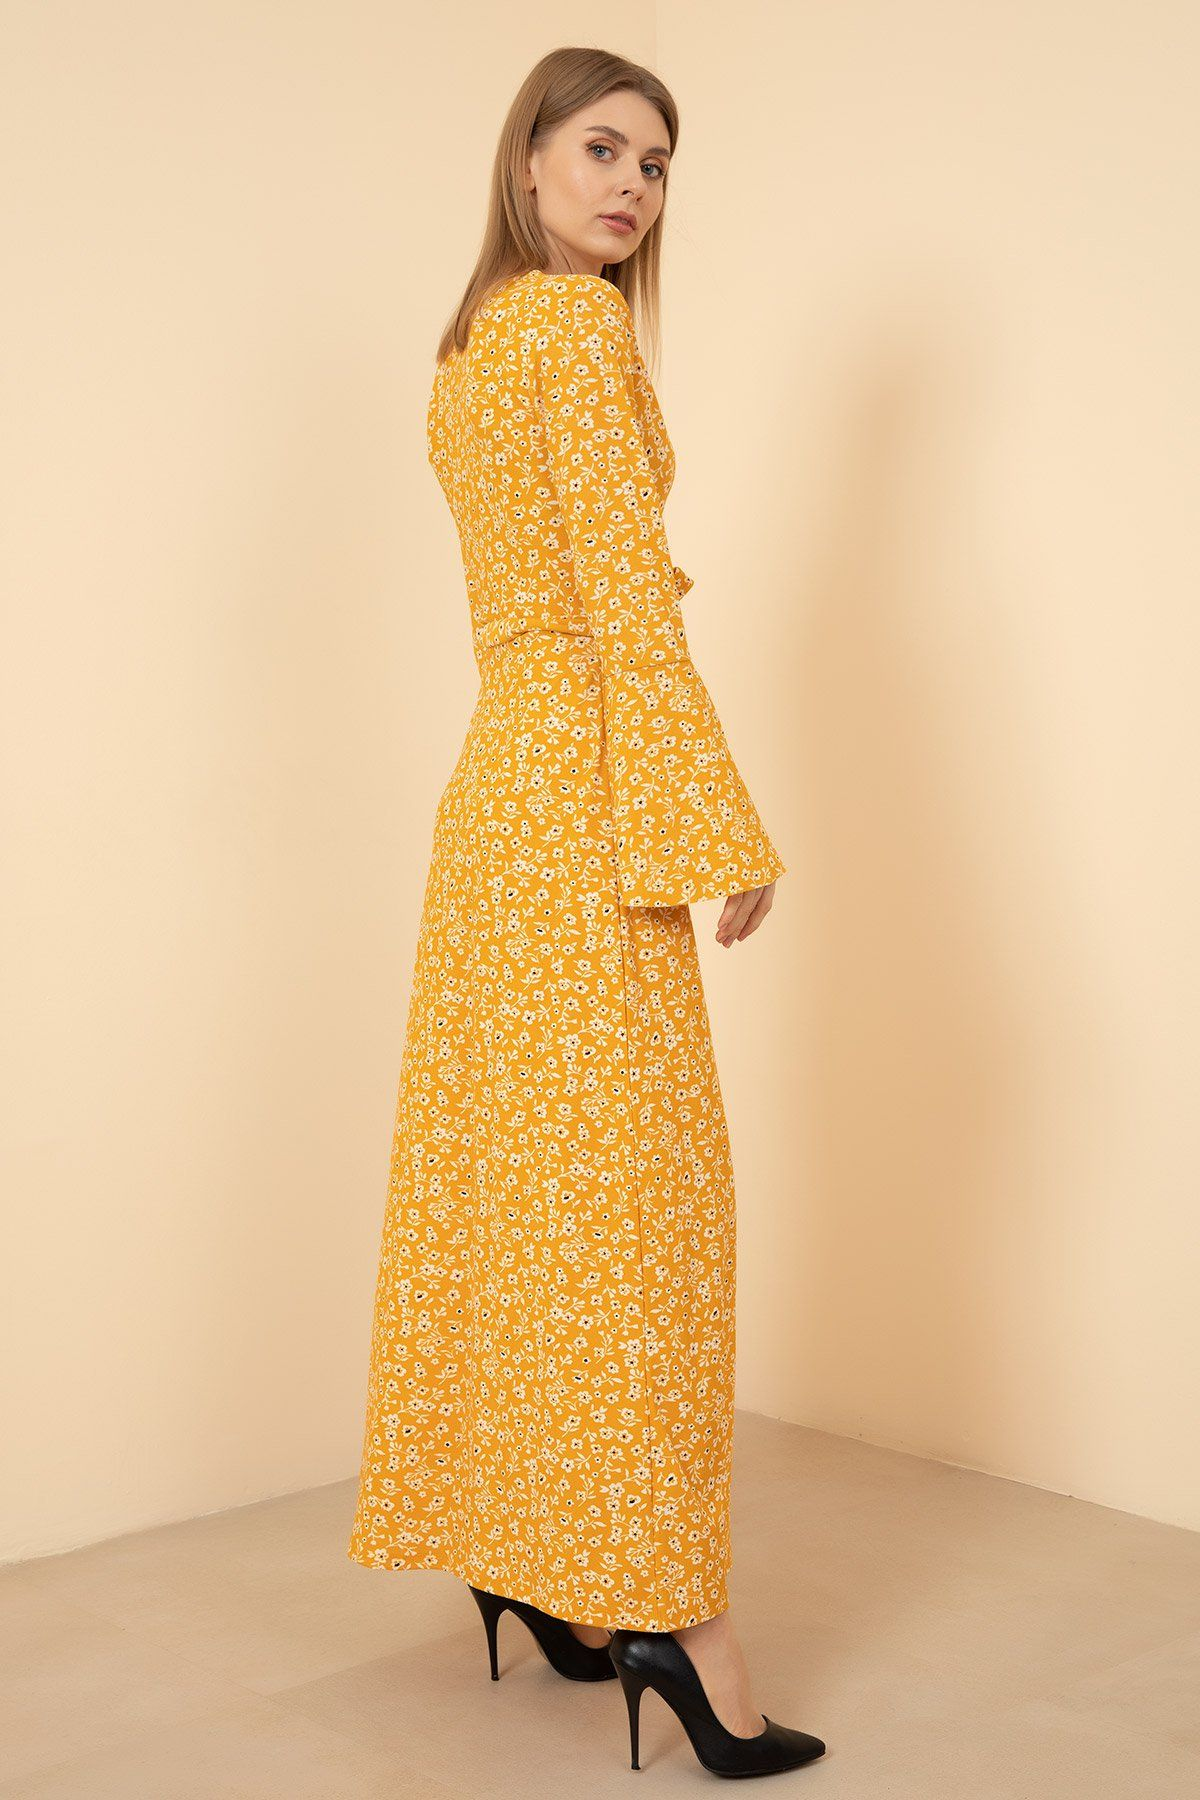 Dresses-Yellow